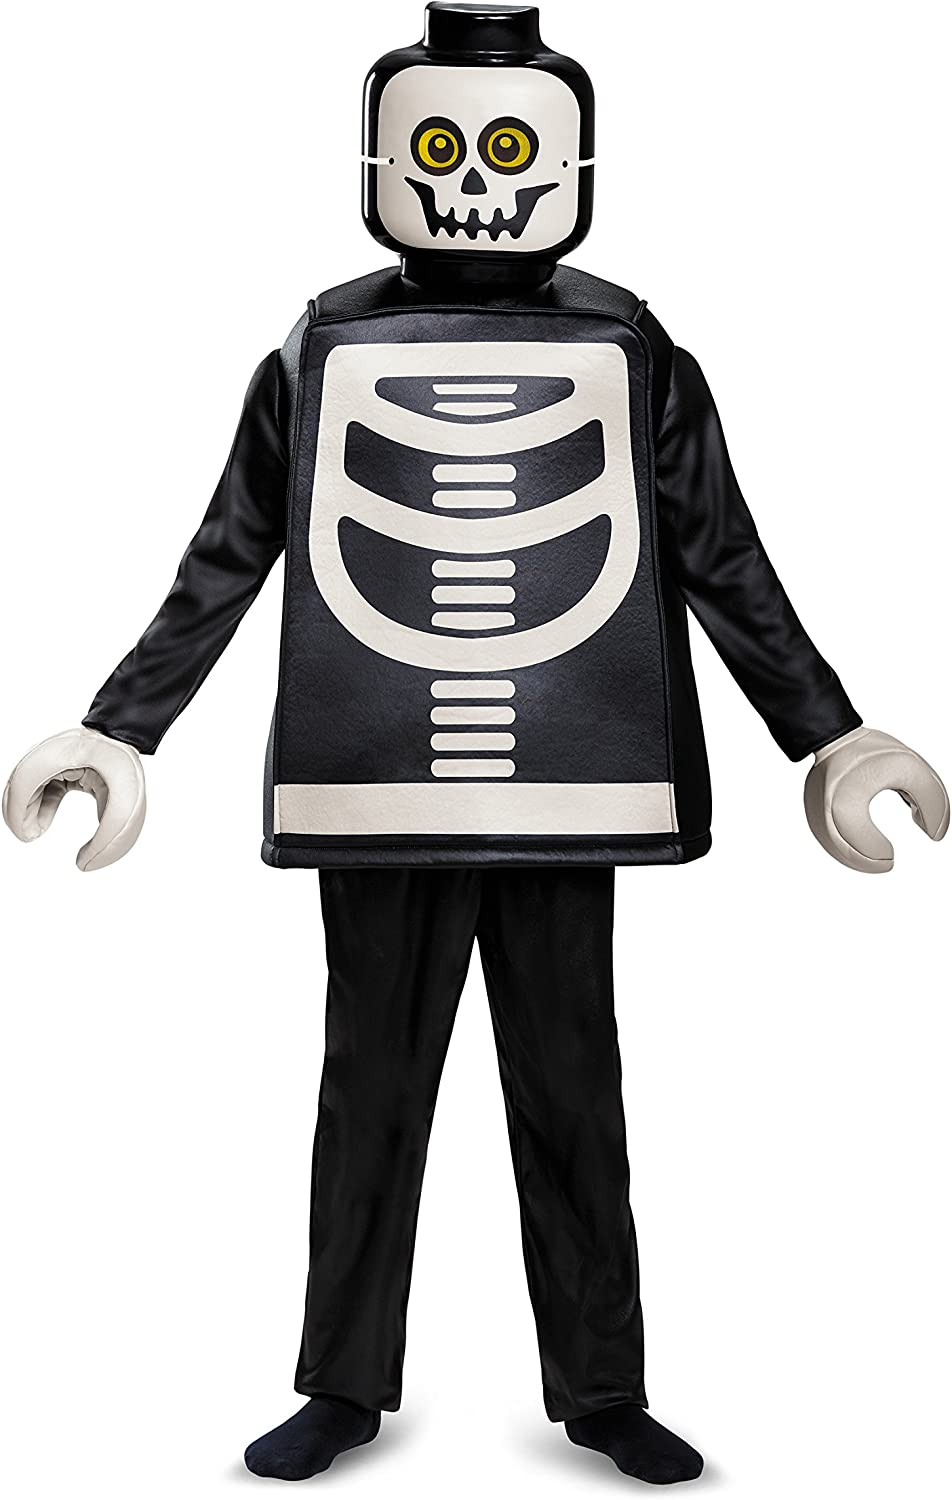 Disguise Lego New Max 50% OFF Orleans Mall Skeleton Deluxe Black Small 4-6 Costume